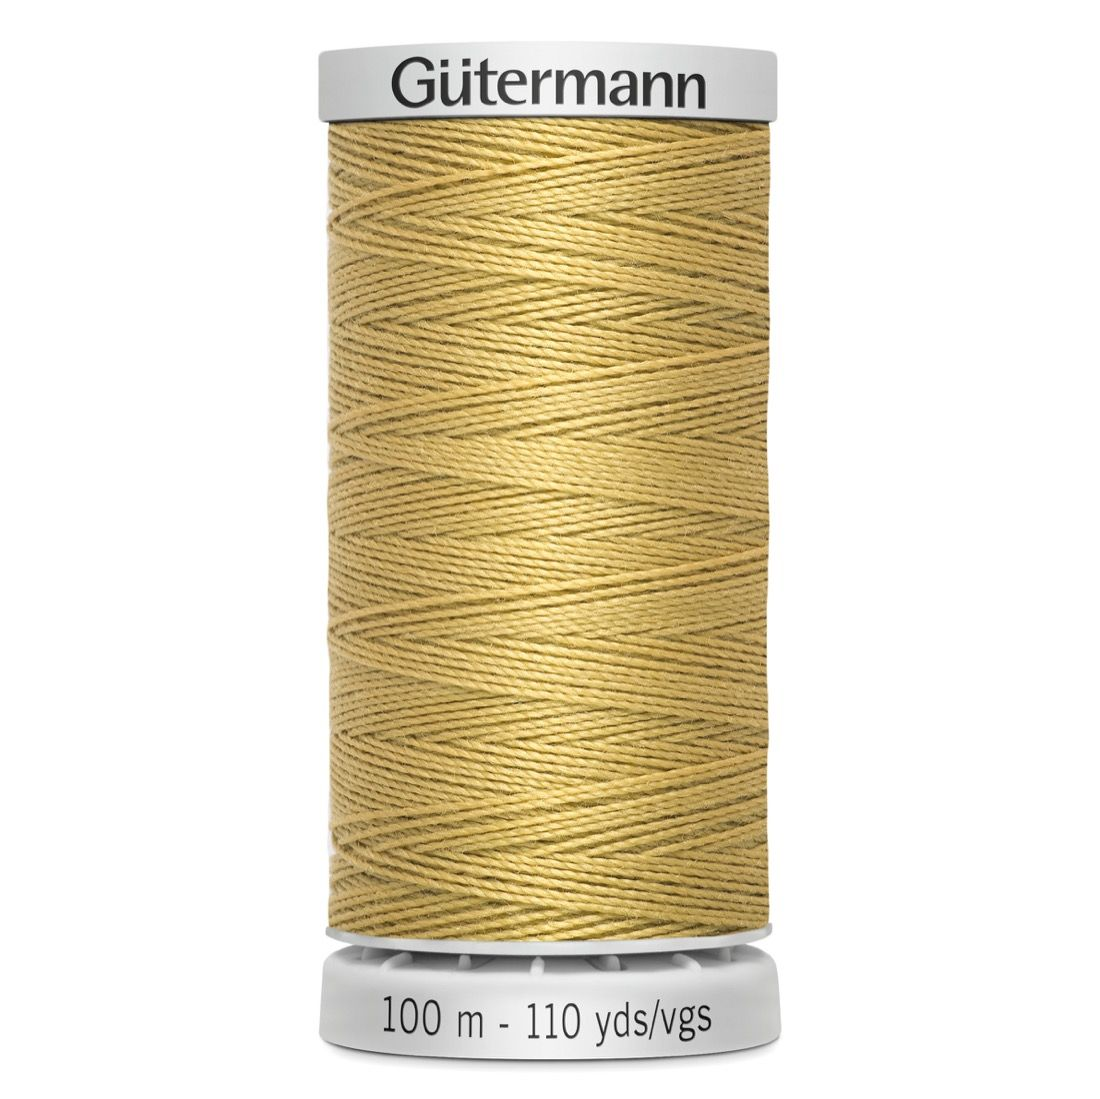 Gutermann Extra Strong Upholstery Thread - 100m - 893